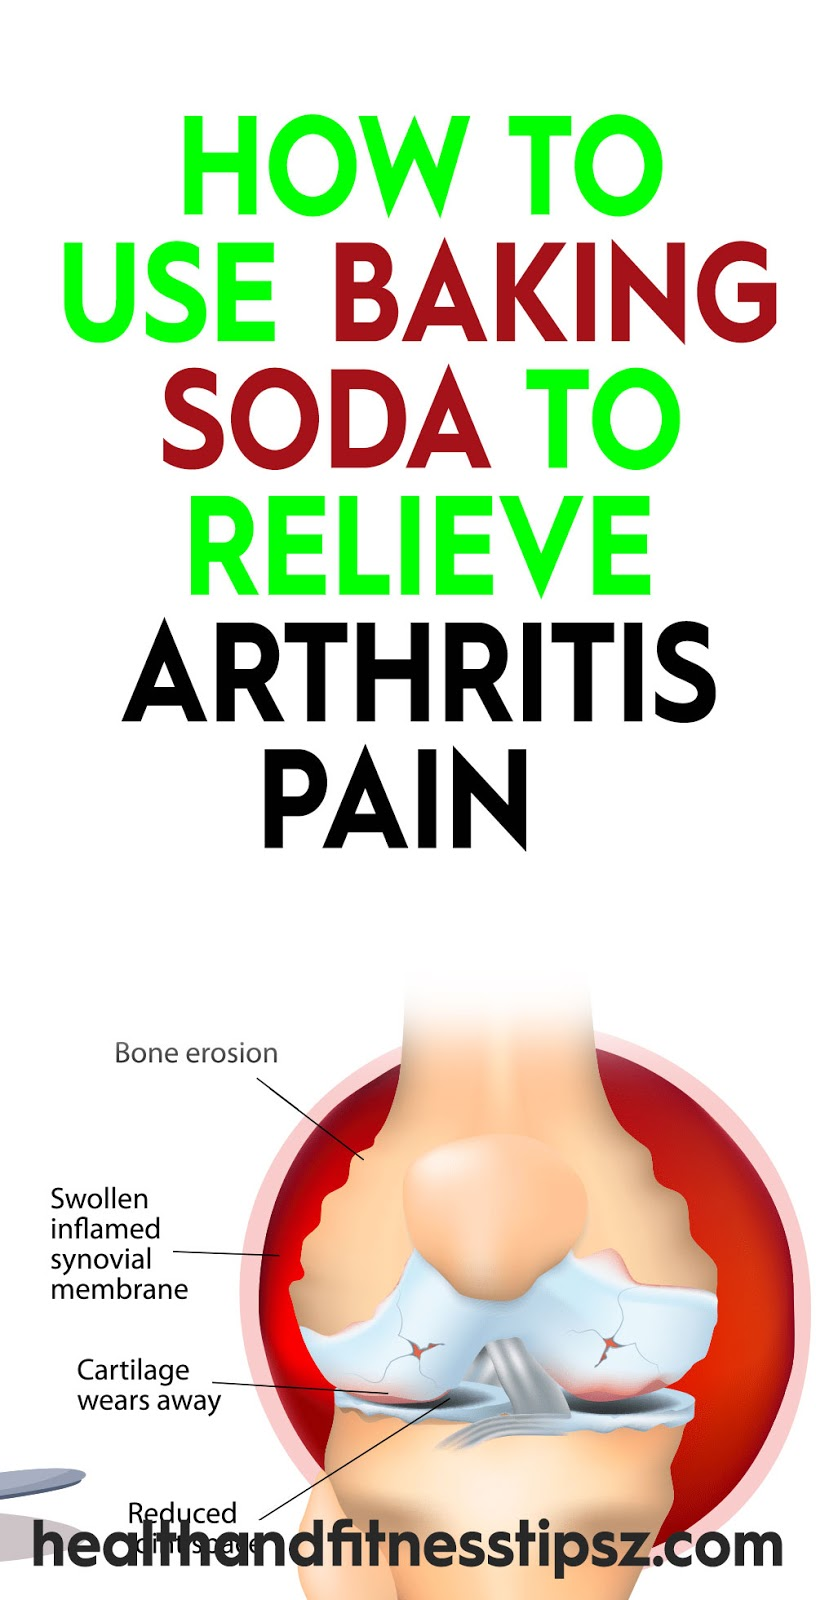 How to Use Baking Soda To Relieve Arthritis Pain